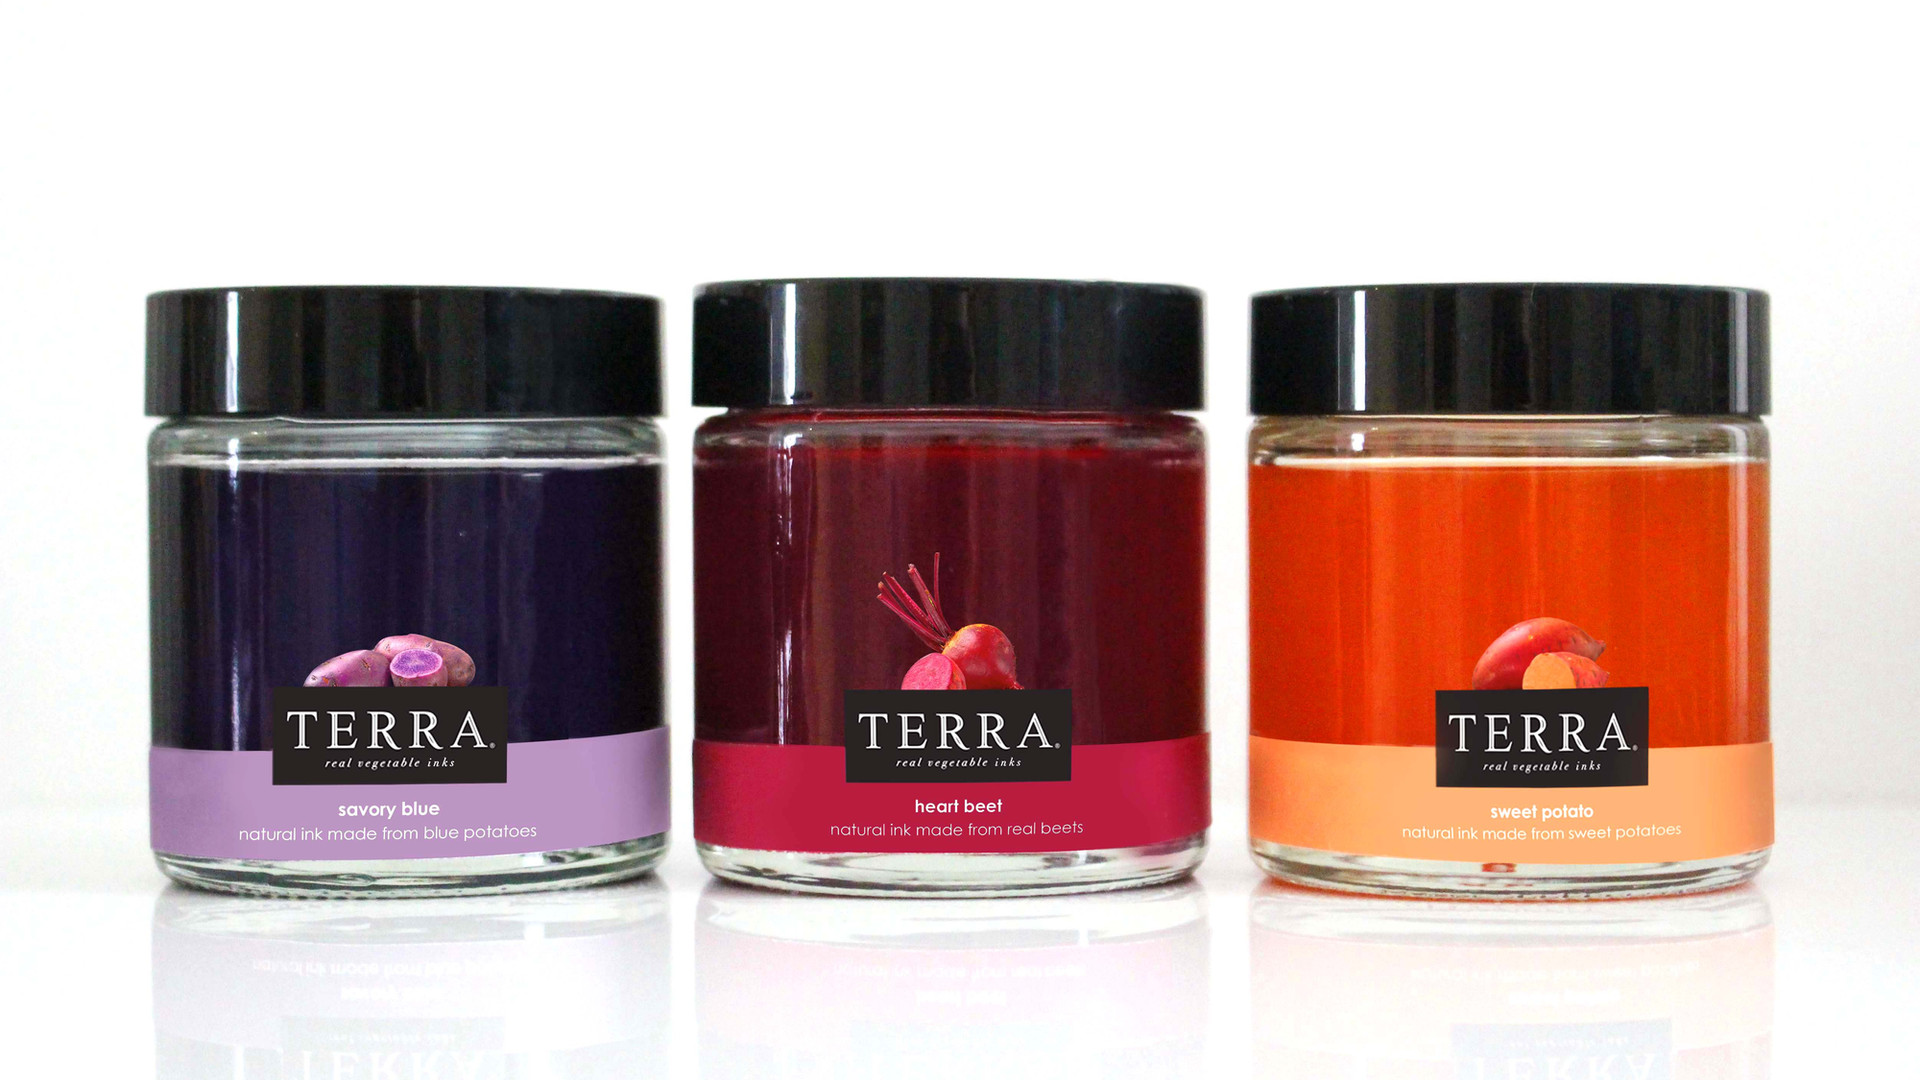 Terra turns veggie chips into paints, delivering 16x higher engagement rate on Instagram